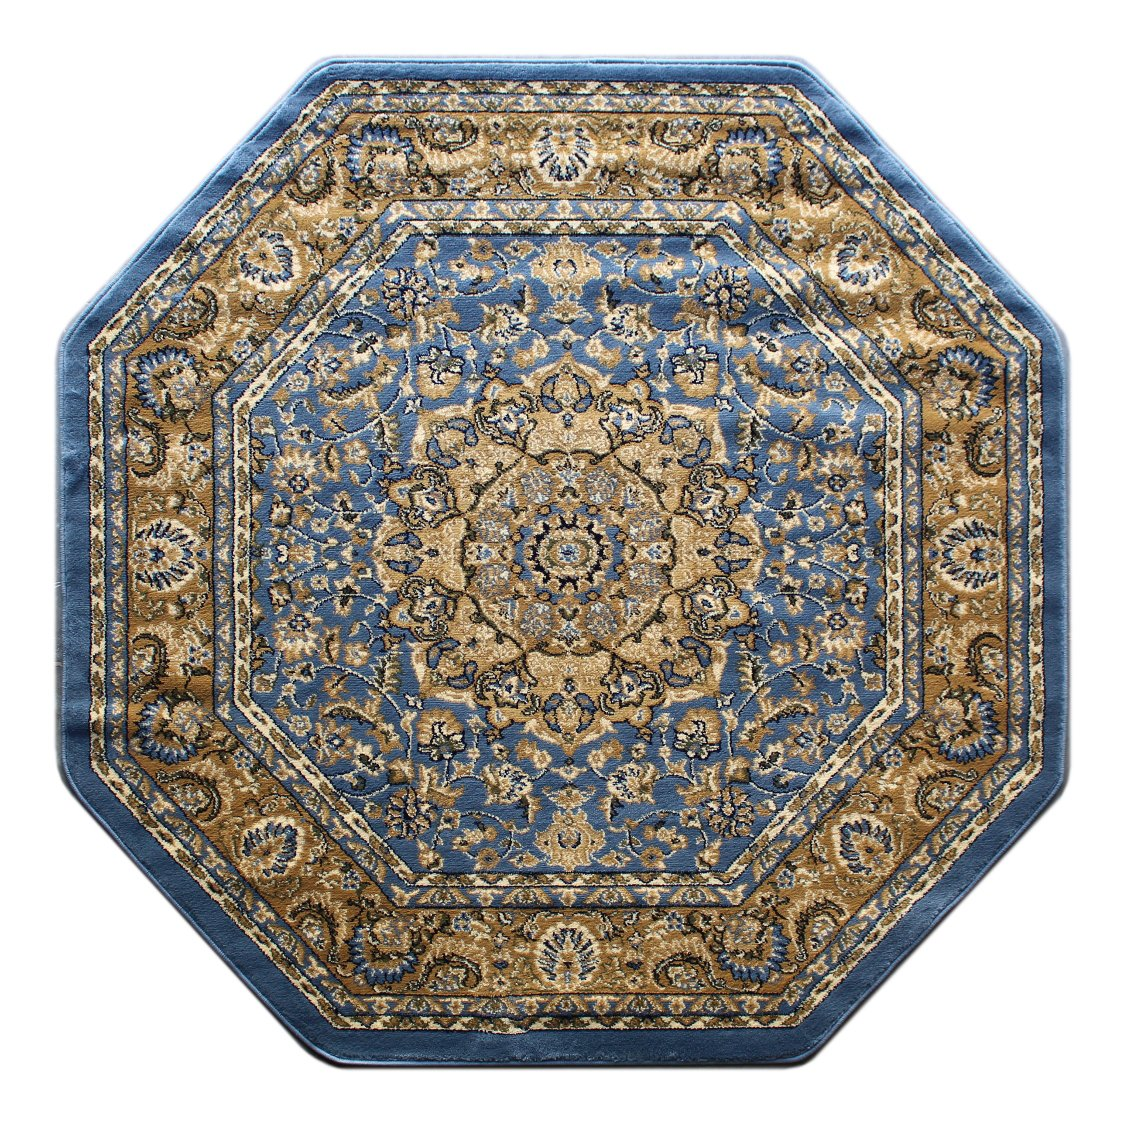 Traditional Octagon Area Rug Design Bellagio 401 Blue (7 Feet 3 Inch X 7 Feet 3 Inch) Octagon